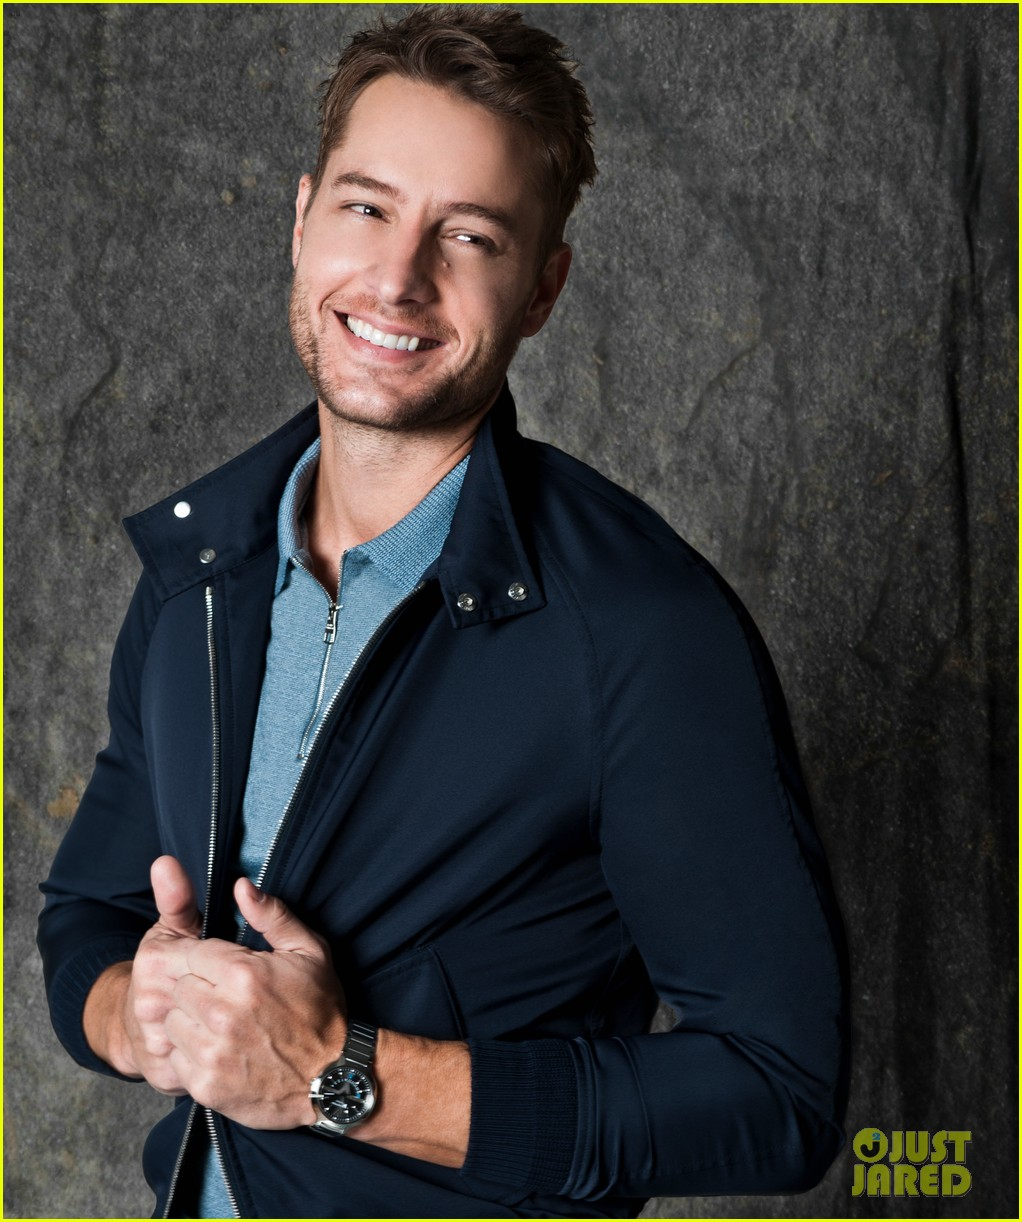 Nathan Hartley Brother Of Justin Hartley >> This Is Us' Justin Hartley Looks So Sexy in His New Photo Shoot: Photo 3842038 | Justin Hartley ...